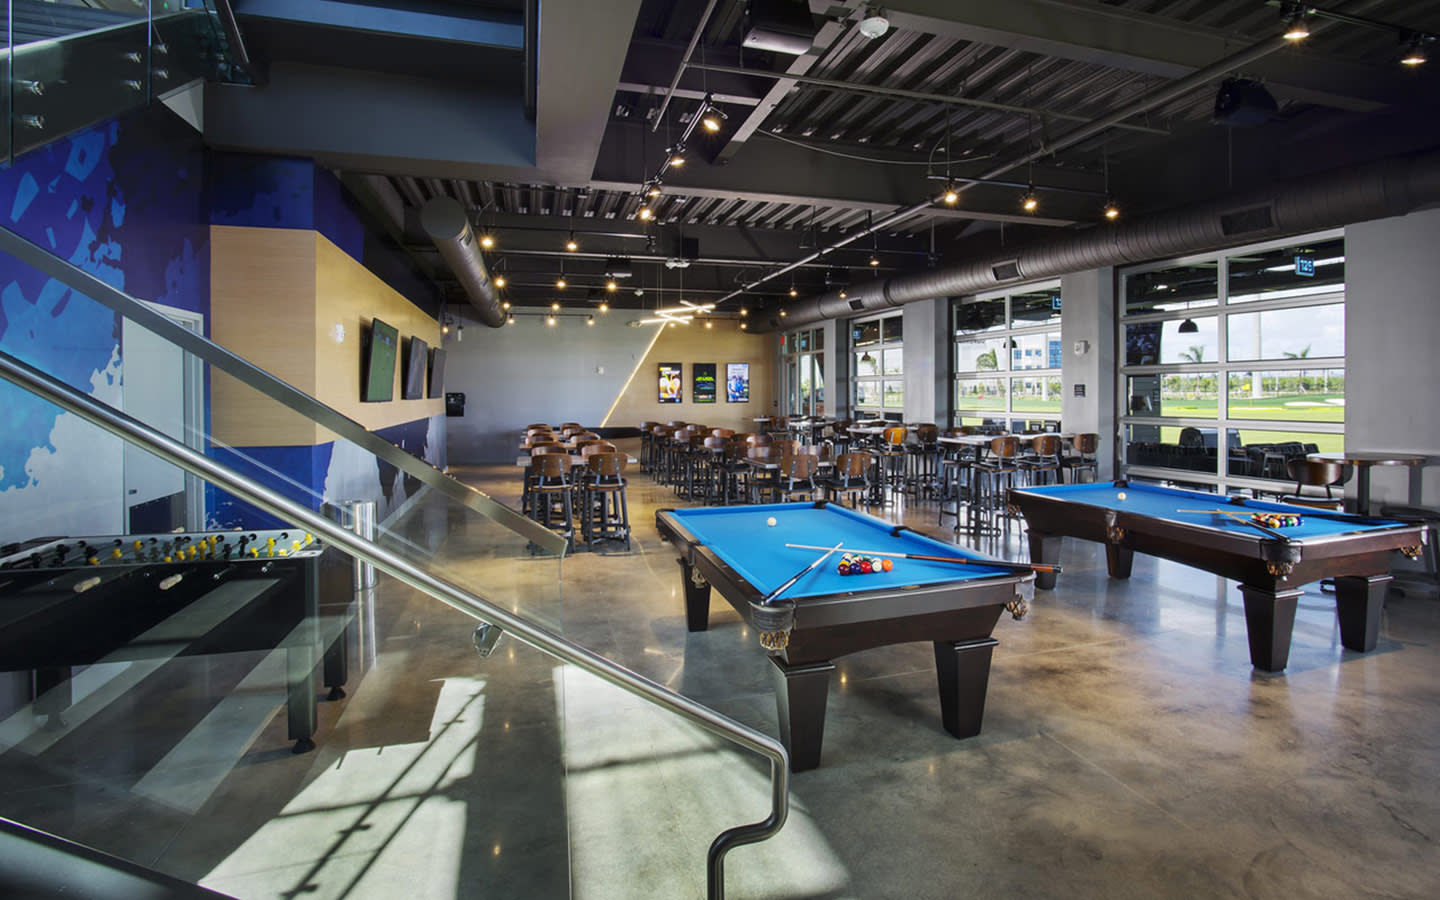 Topgolf Doral Billiards